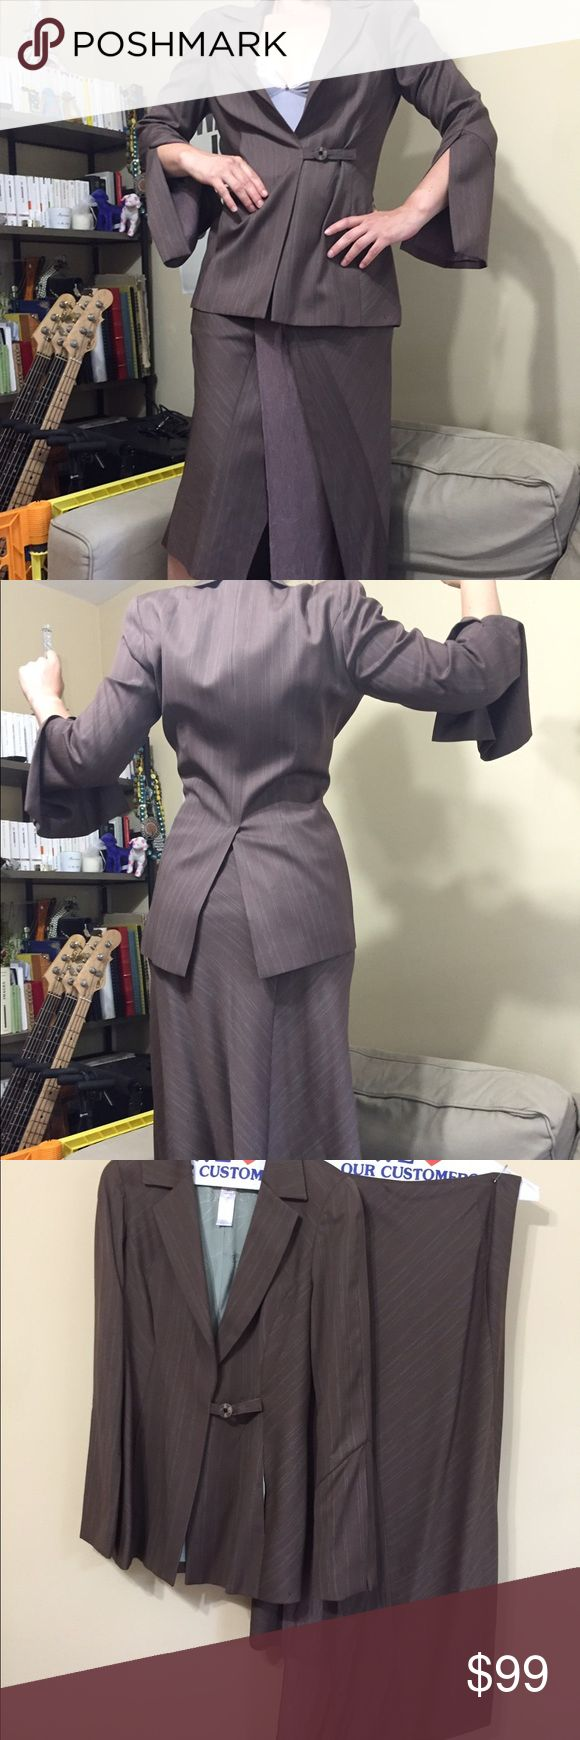 Vintage Kenzo Long asymmetric skirt & jacket Unique piece in great condition! Please send me your best offer!!! 💵💰100% wool outside, Linen 100% viscose - worn once only, great condition - size 38 (French size) - pet free & smoke free household Kenzo Other